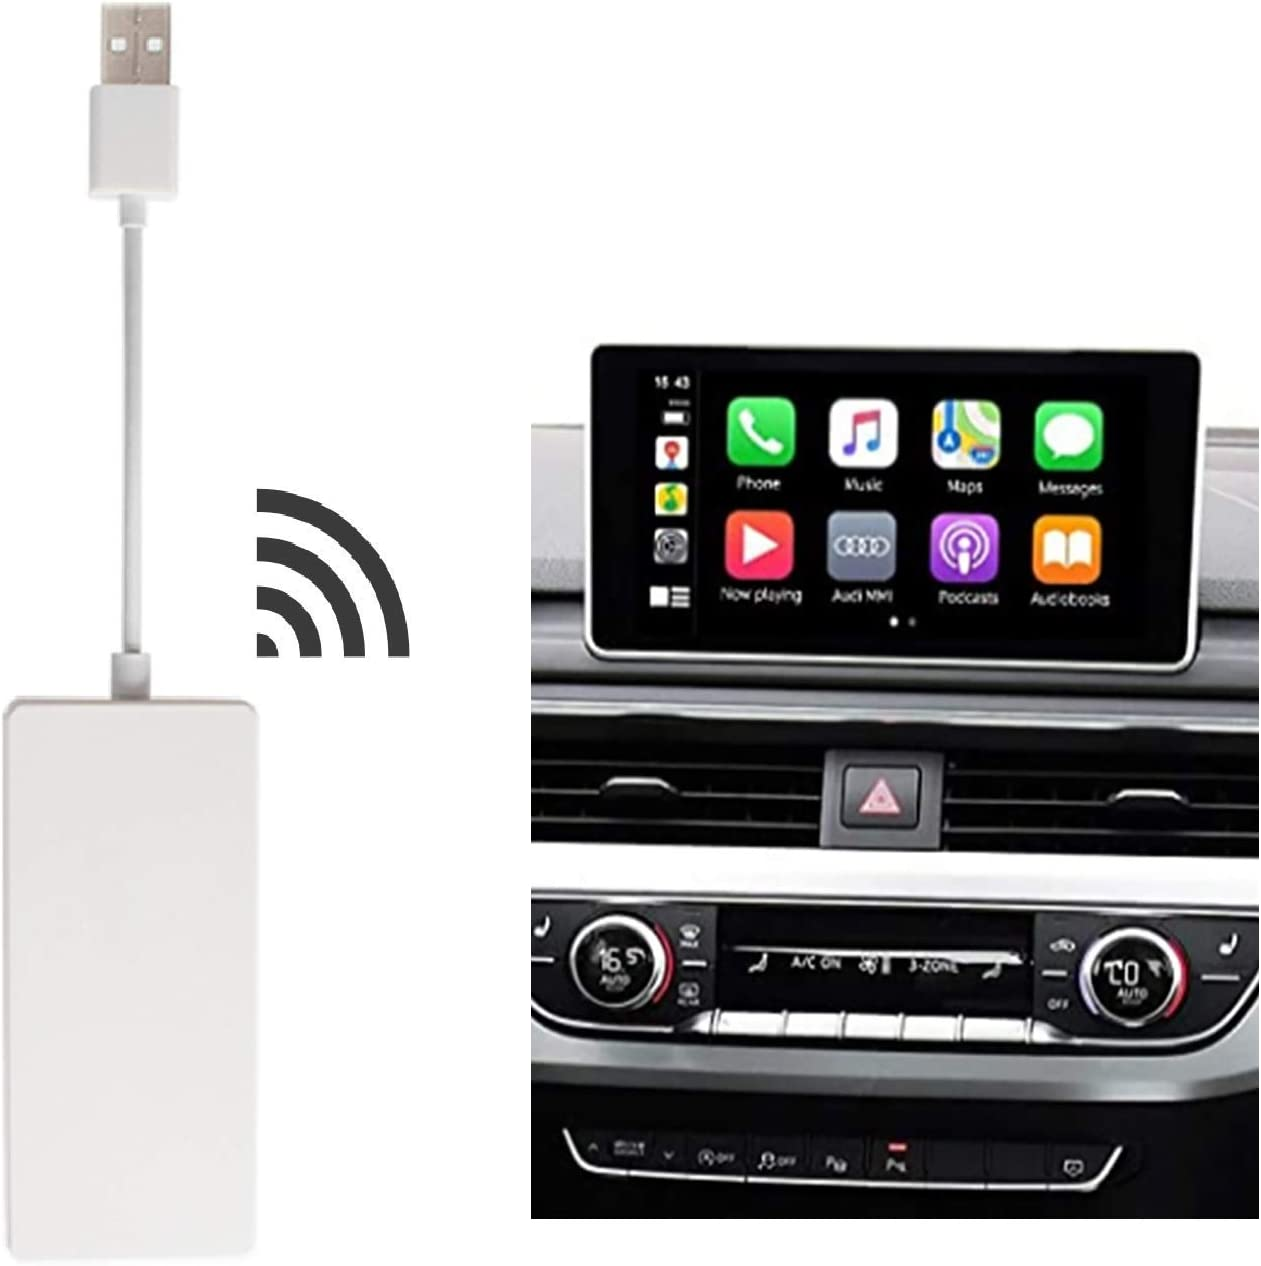 Wireless Carplay Dongle USB Wired Android Auto/Screen Mirroring SIRI Voice Control Google Maps Waze Maps for Car Android System Screen,NOT for Original Factory Car Radio White